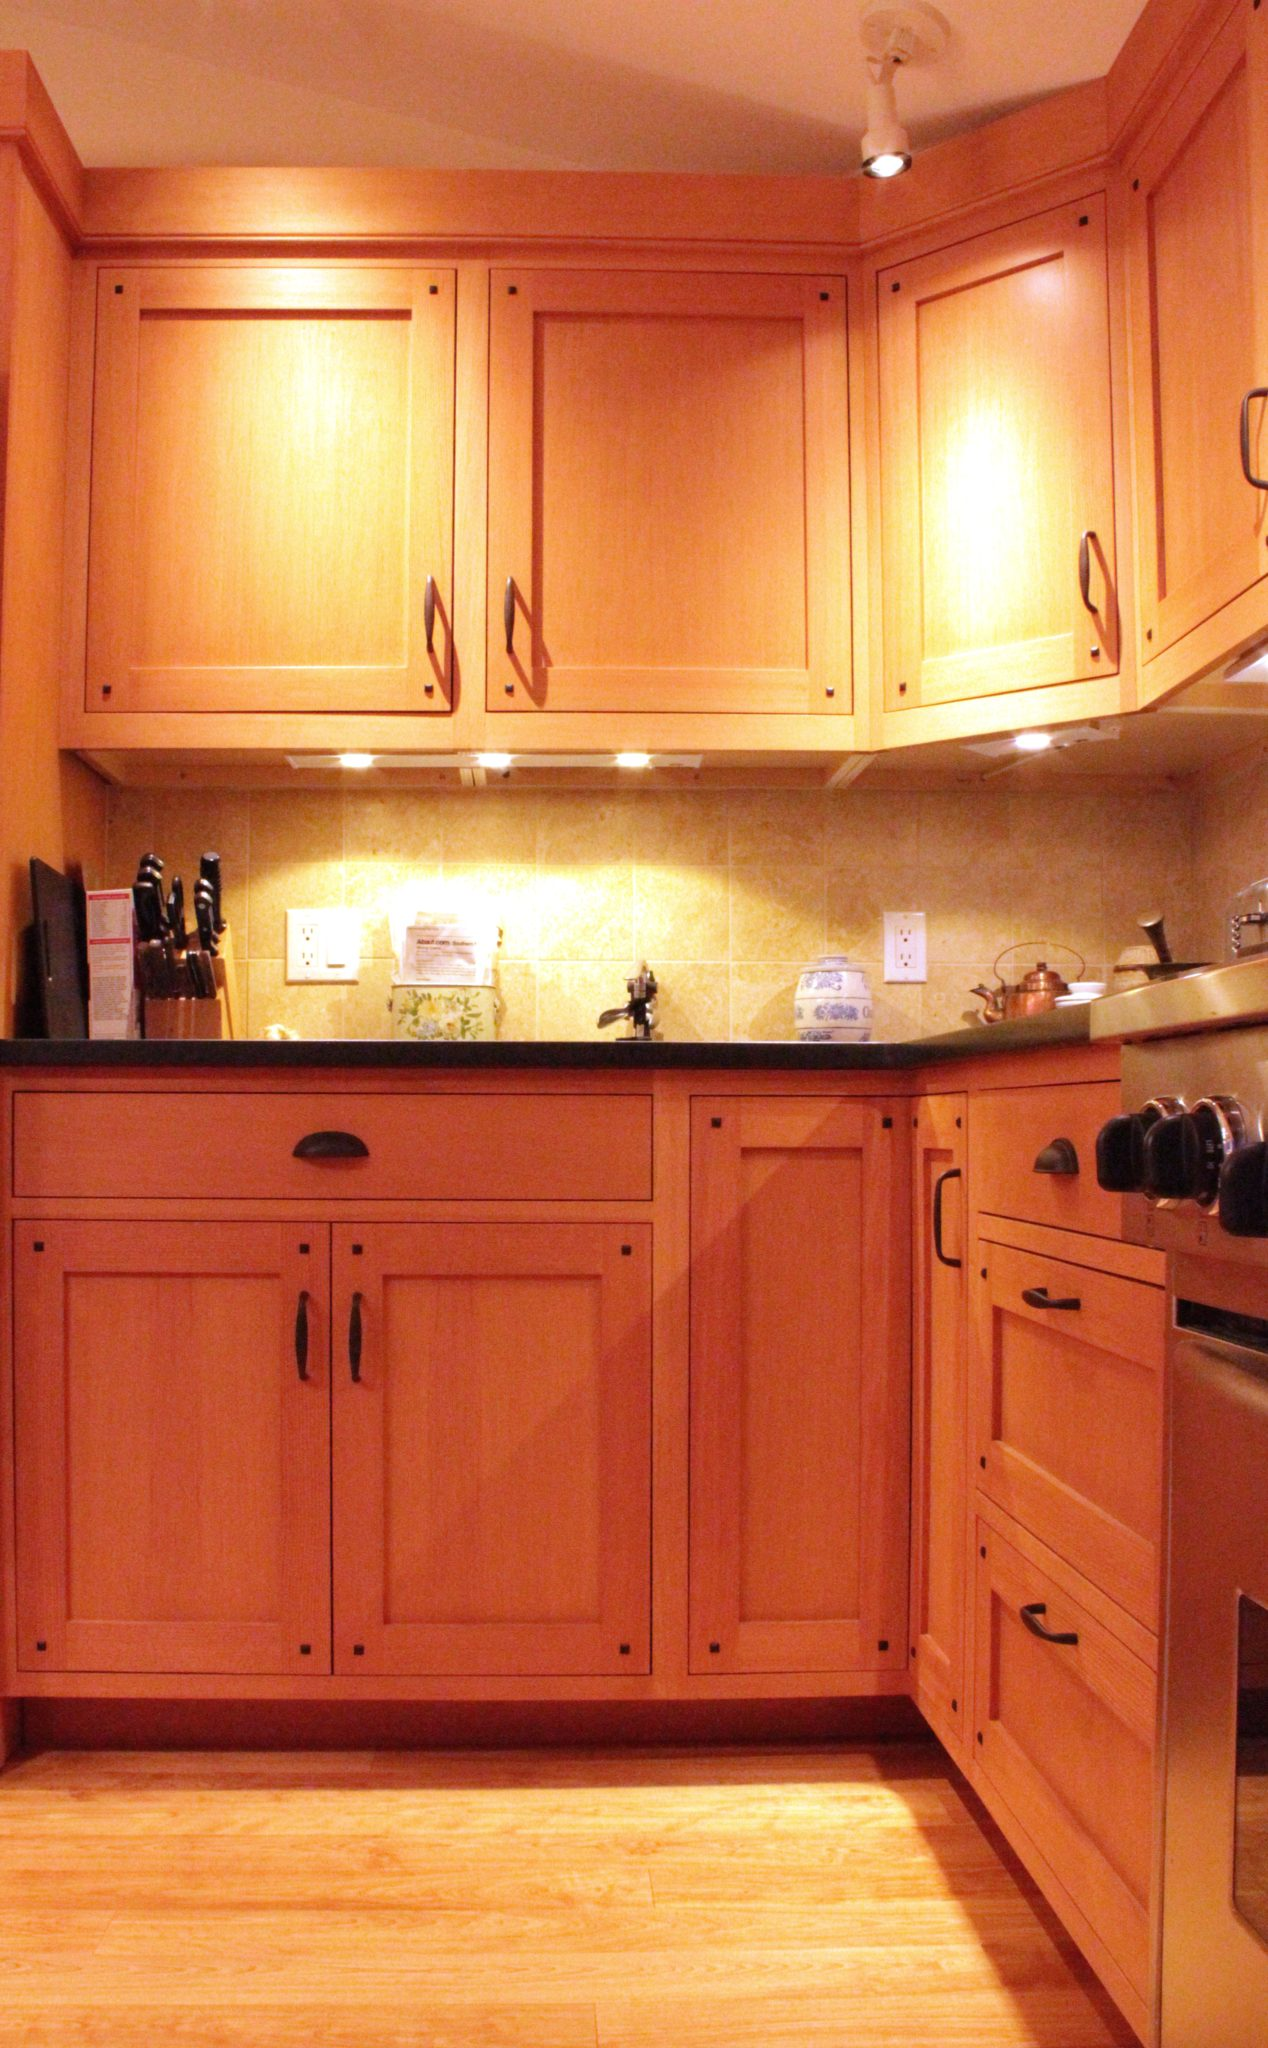 Arts and crafts style kitchen cabinetry, maine cabinet ...